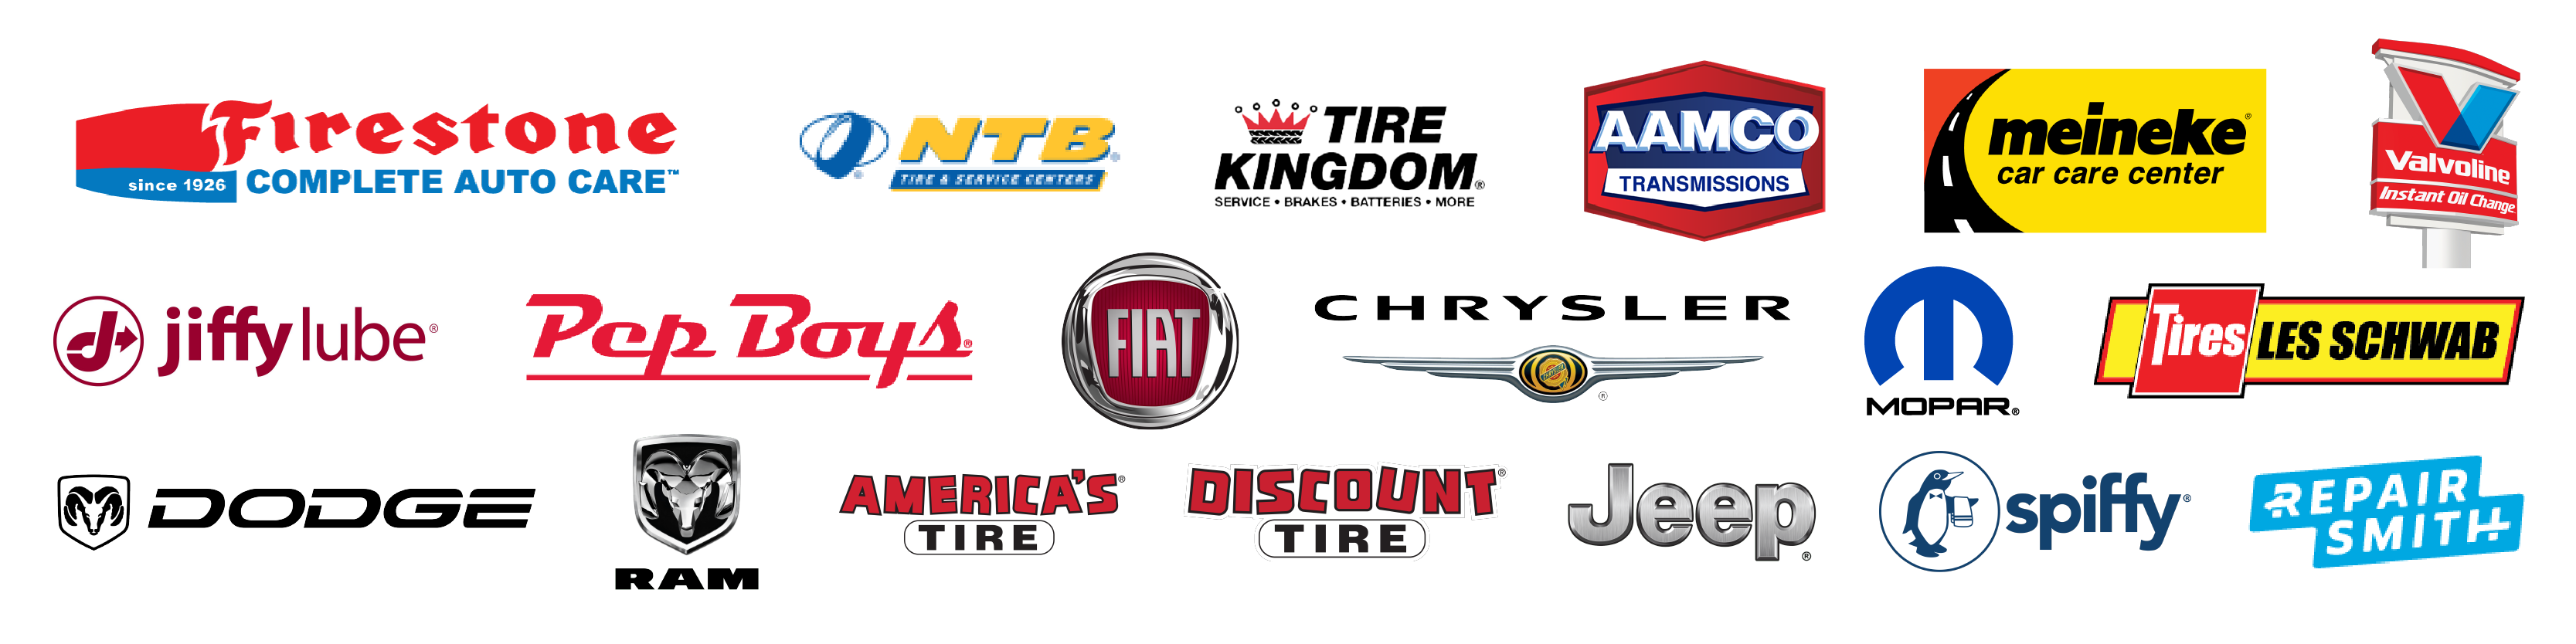 "Service available at ""Firestone, Sears, NTB, Tire Kingdom, AAMCO, Meineke, Jiffy Lube and more!"" or Partners logo ""Firestone, Sears, NTB, Tire Kingdom, AAMCO, Meineke, Jiffy Lube and more!"